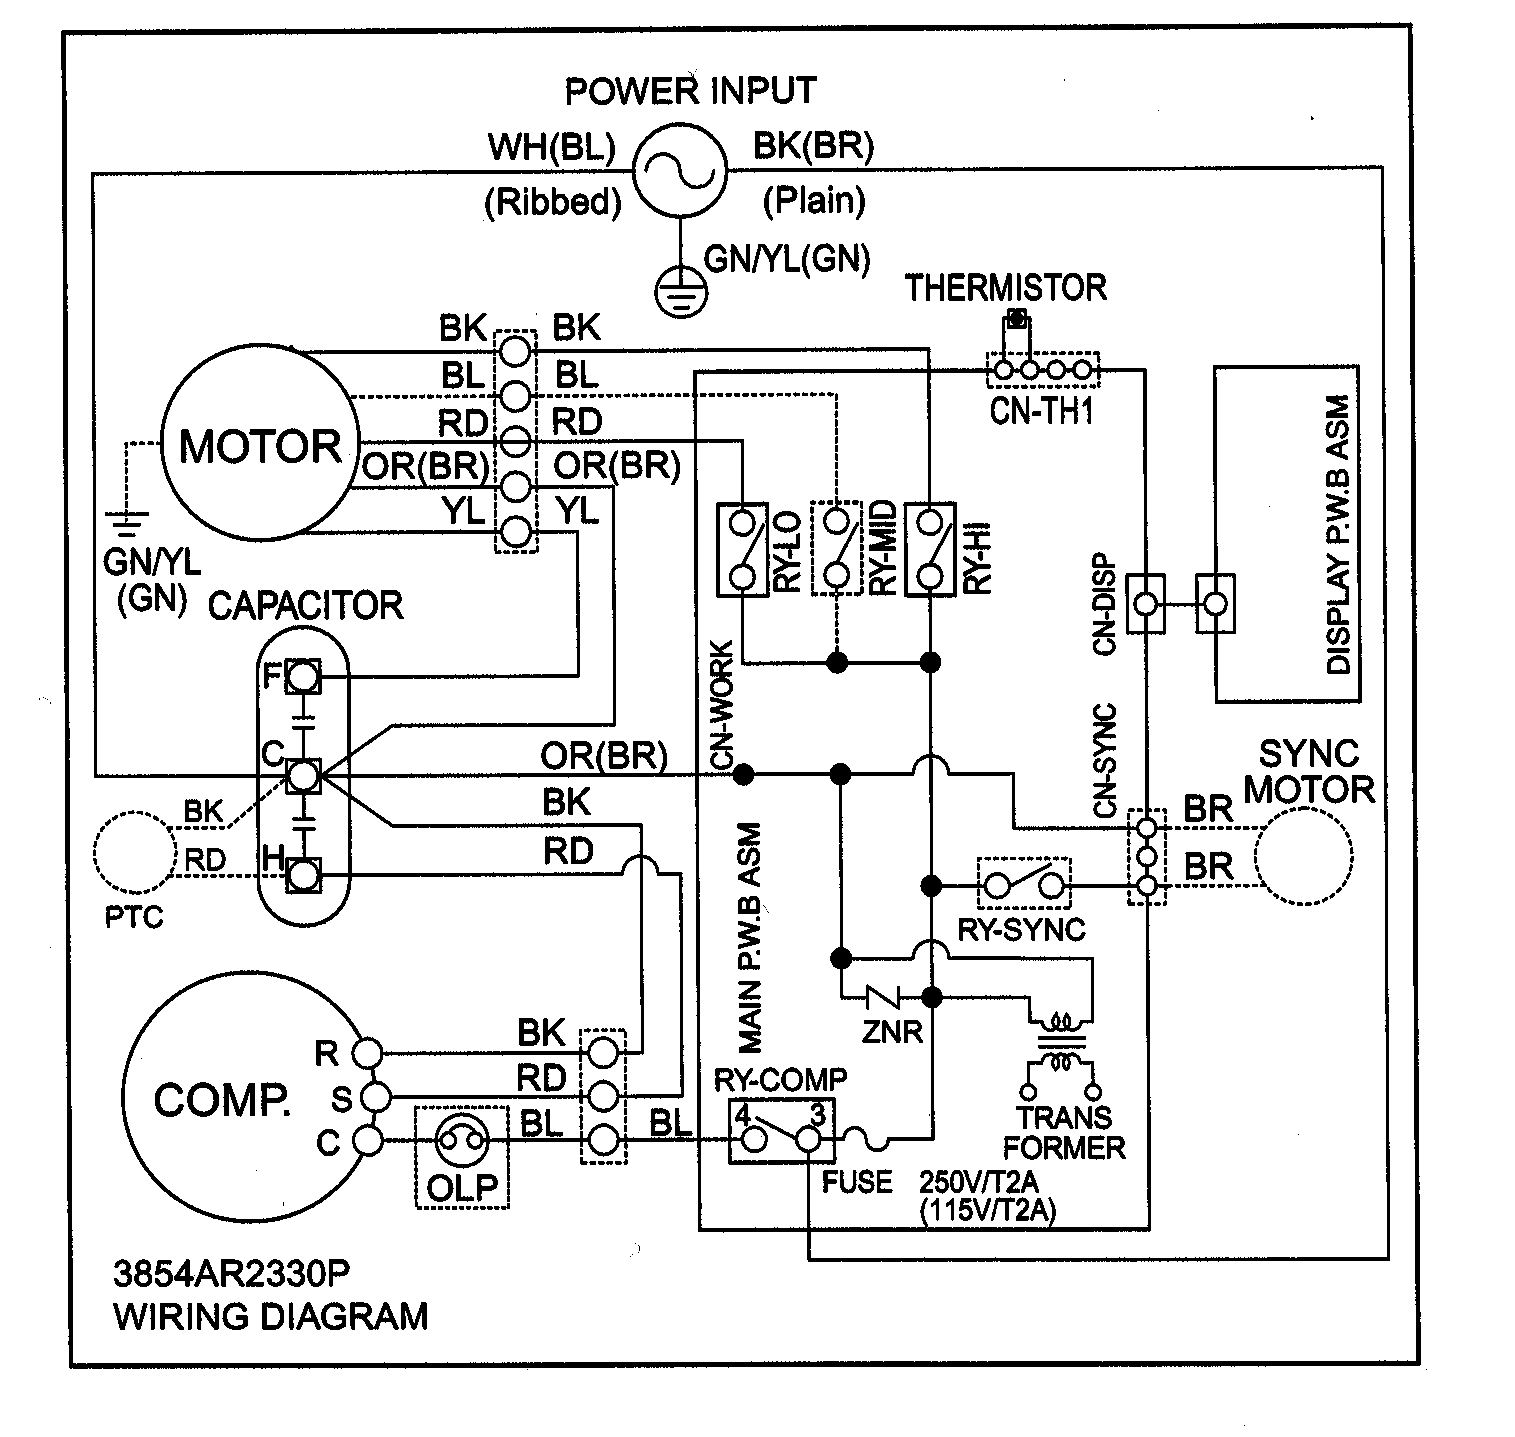 [DIAGRAM] Heil Air Conditioner Wiring Diagram FULL Version